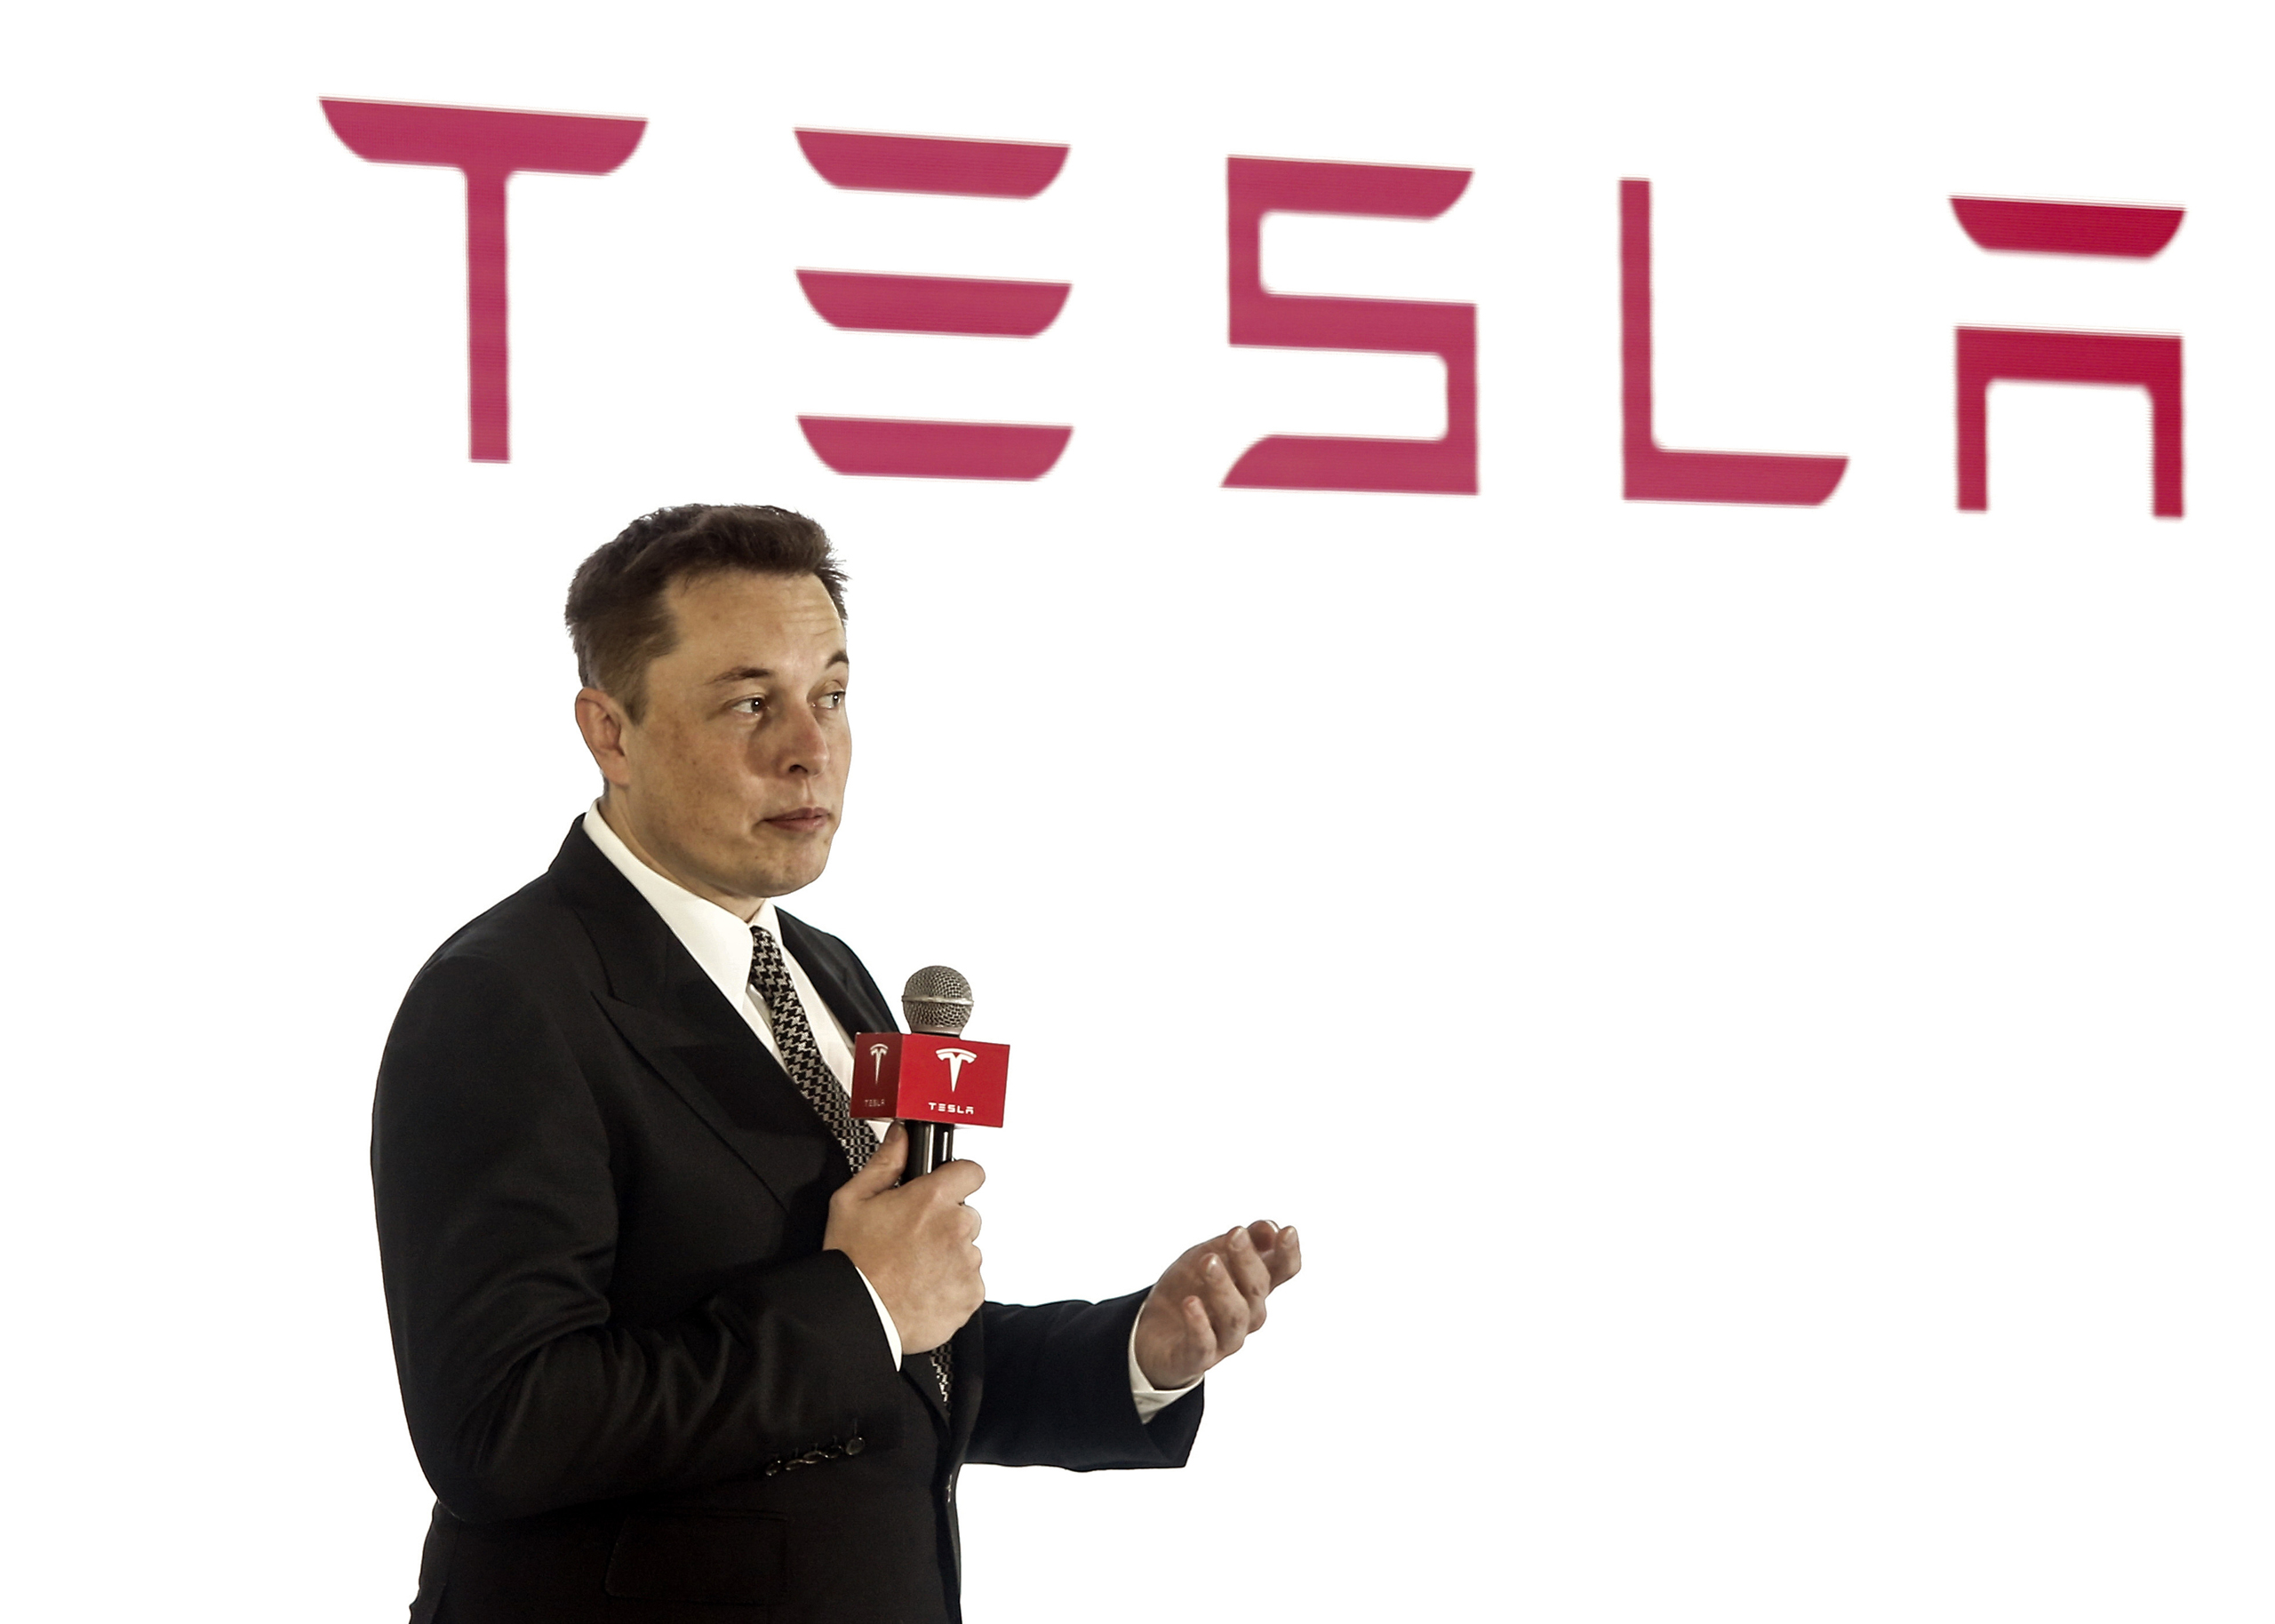 Elon Musk addresses a press conference to declare that the Tesla Motors releases v7.0 System in China on October 23, 2015. in Beijing, China.